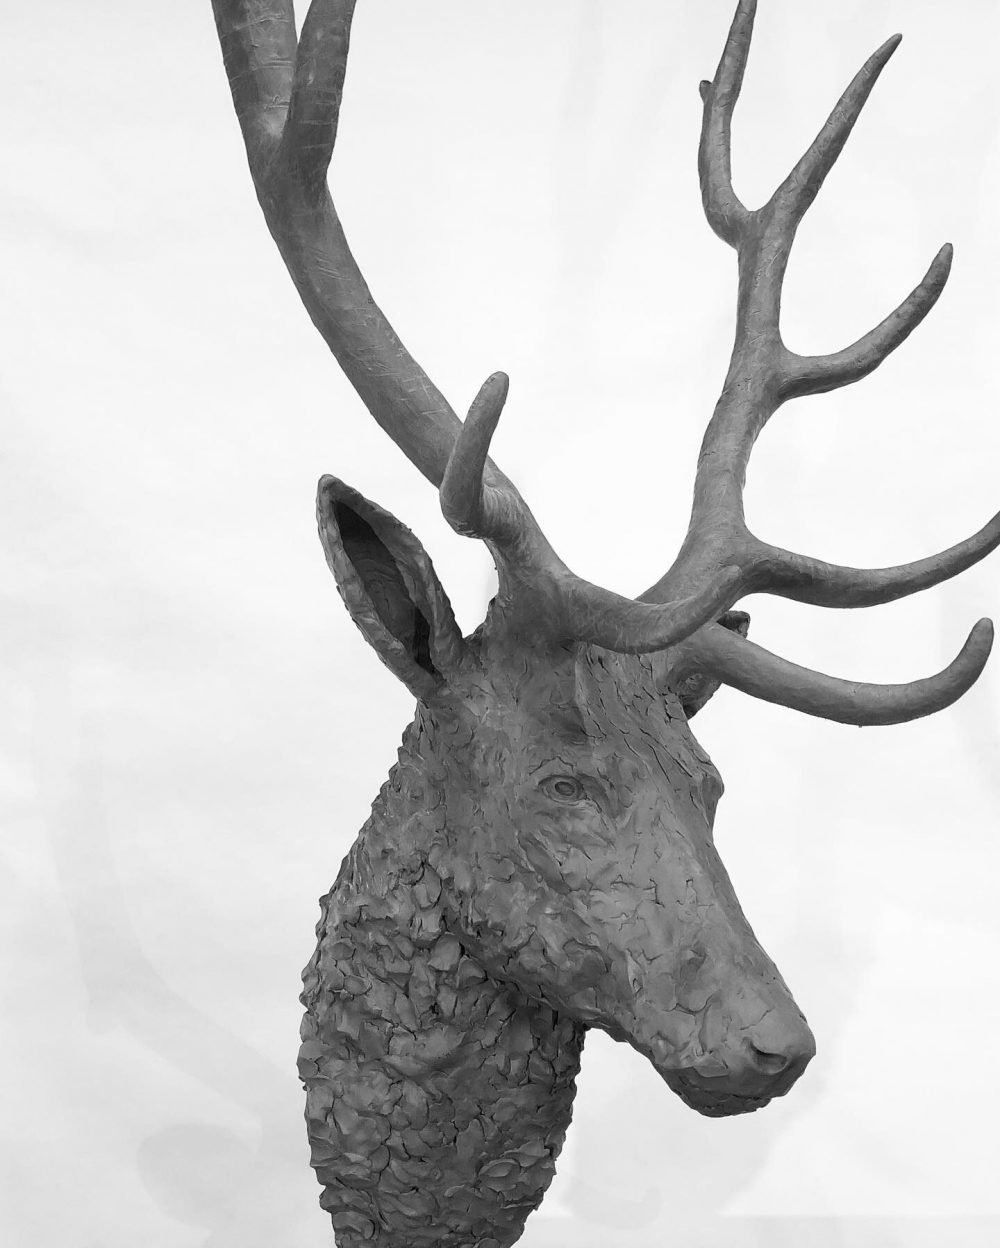 stag head sculpture front side view